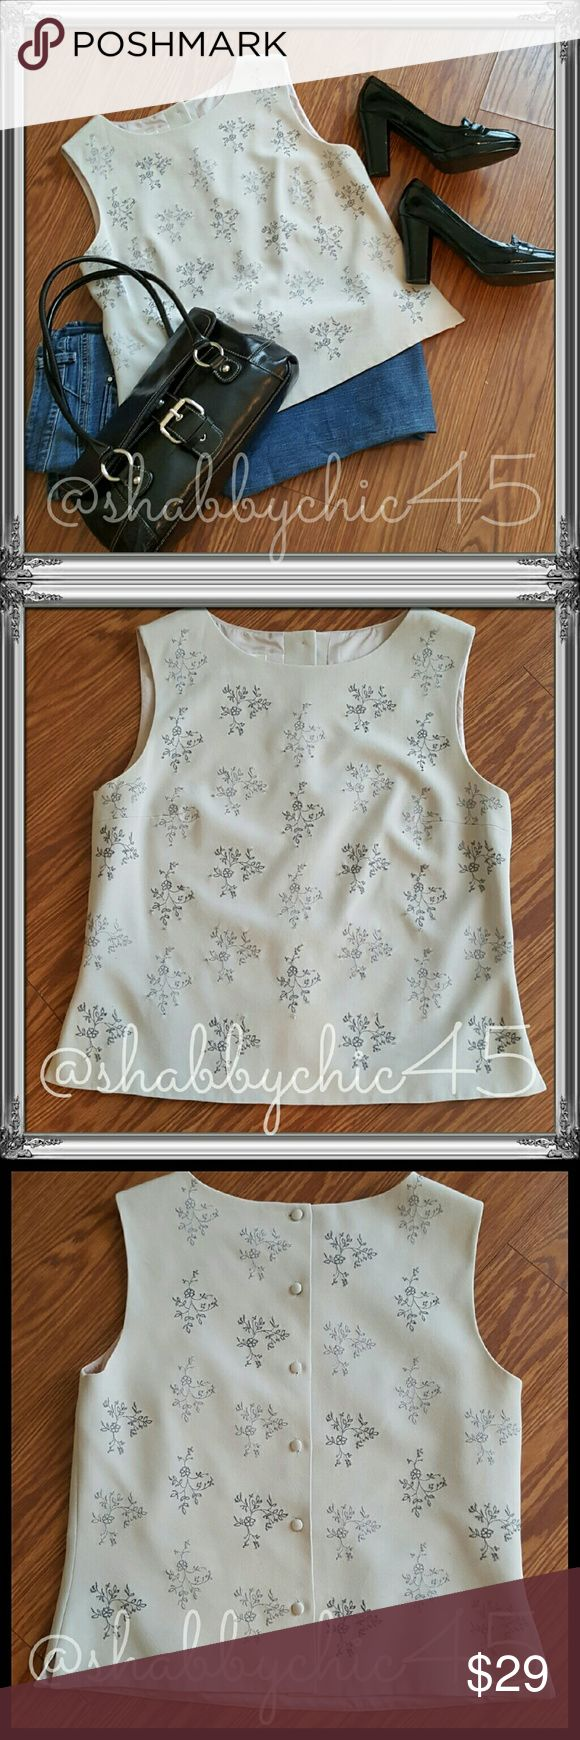 EUC Talbots Sleeveless Button Back Lined Shell EUC fully lined button back embroidered and beaded shell can be paired with slacks or skirt die a beautiful After 5 ensemble or wear Witt your favorite skinny jeans and heels for date night with your special someone. Either way, you are sure to make a fashion statement! ??Smoke free home. No trades. Open to reasonable offers unless marked as firm. Happy Poshing!!?? Talbots Tops Blouses